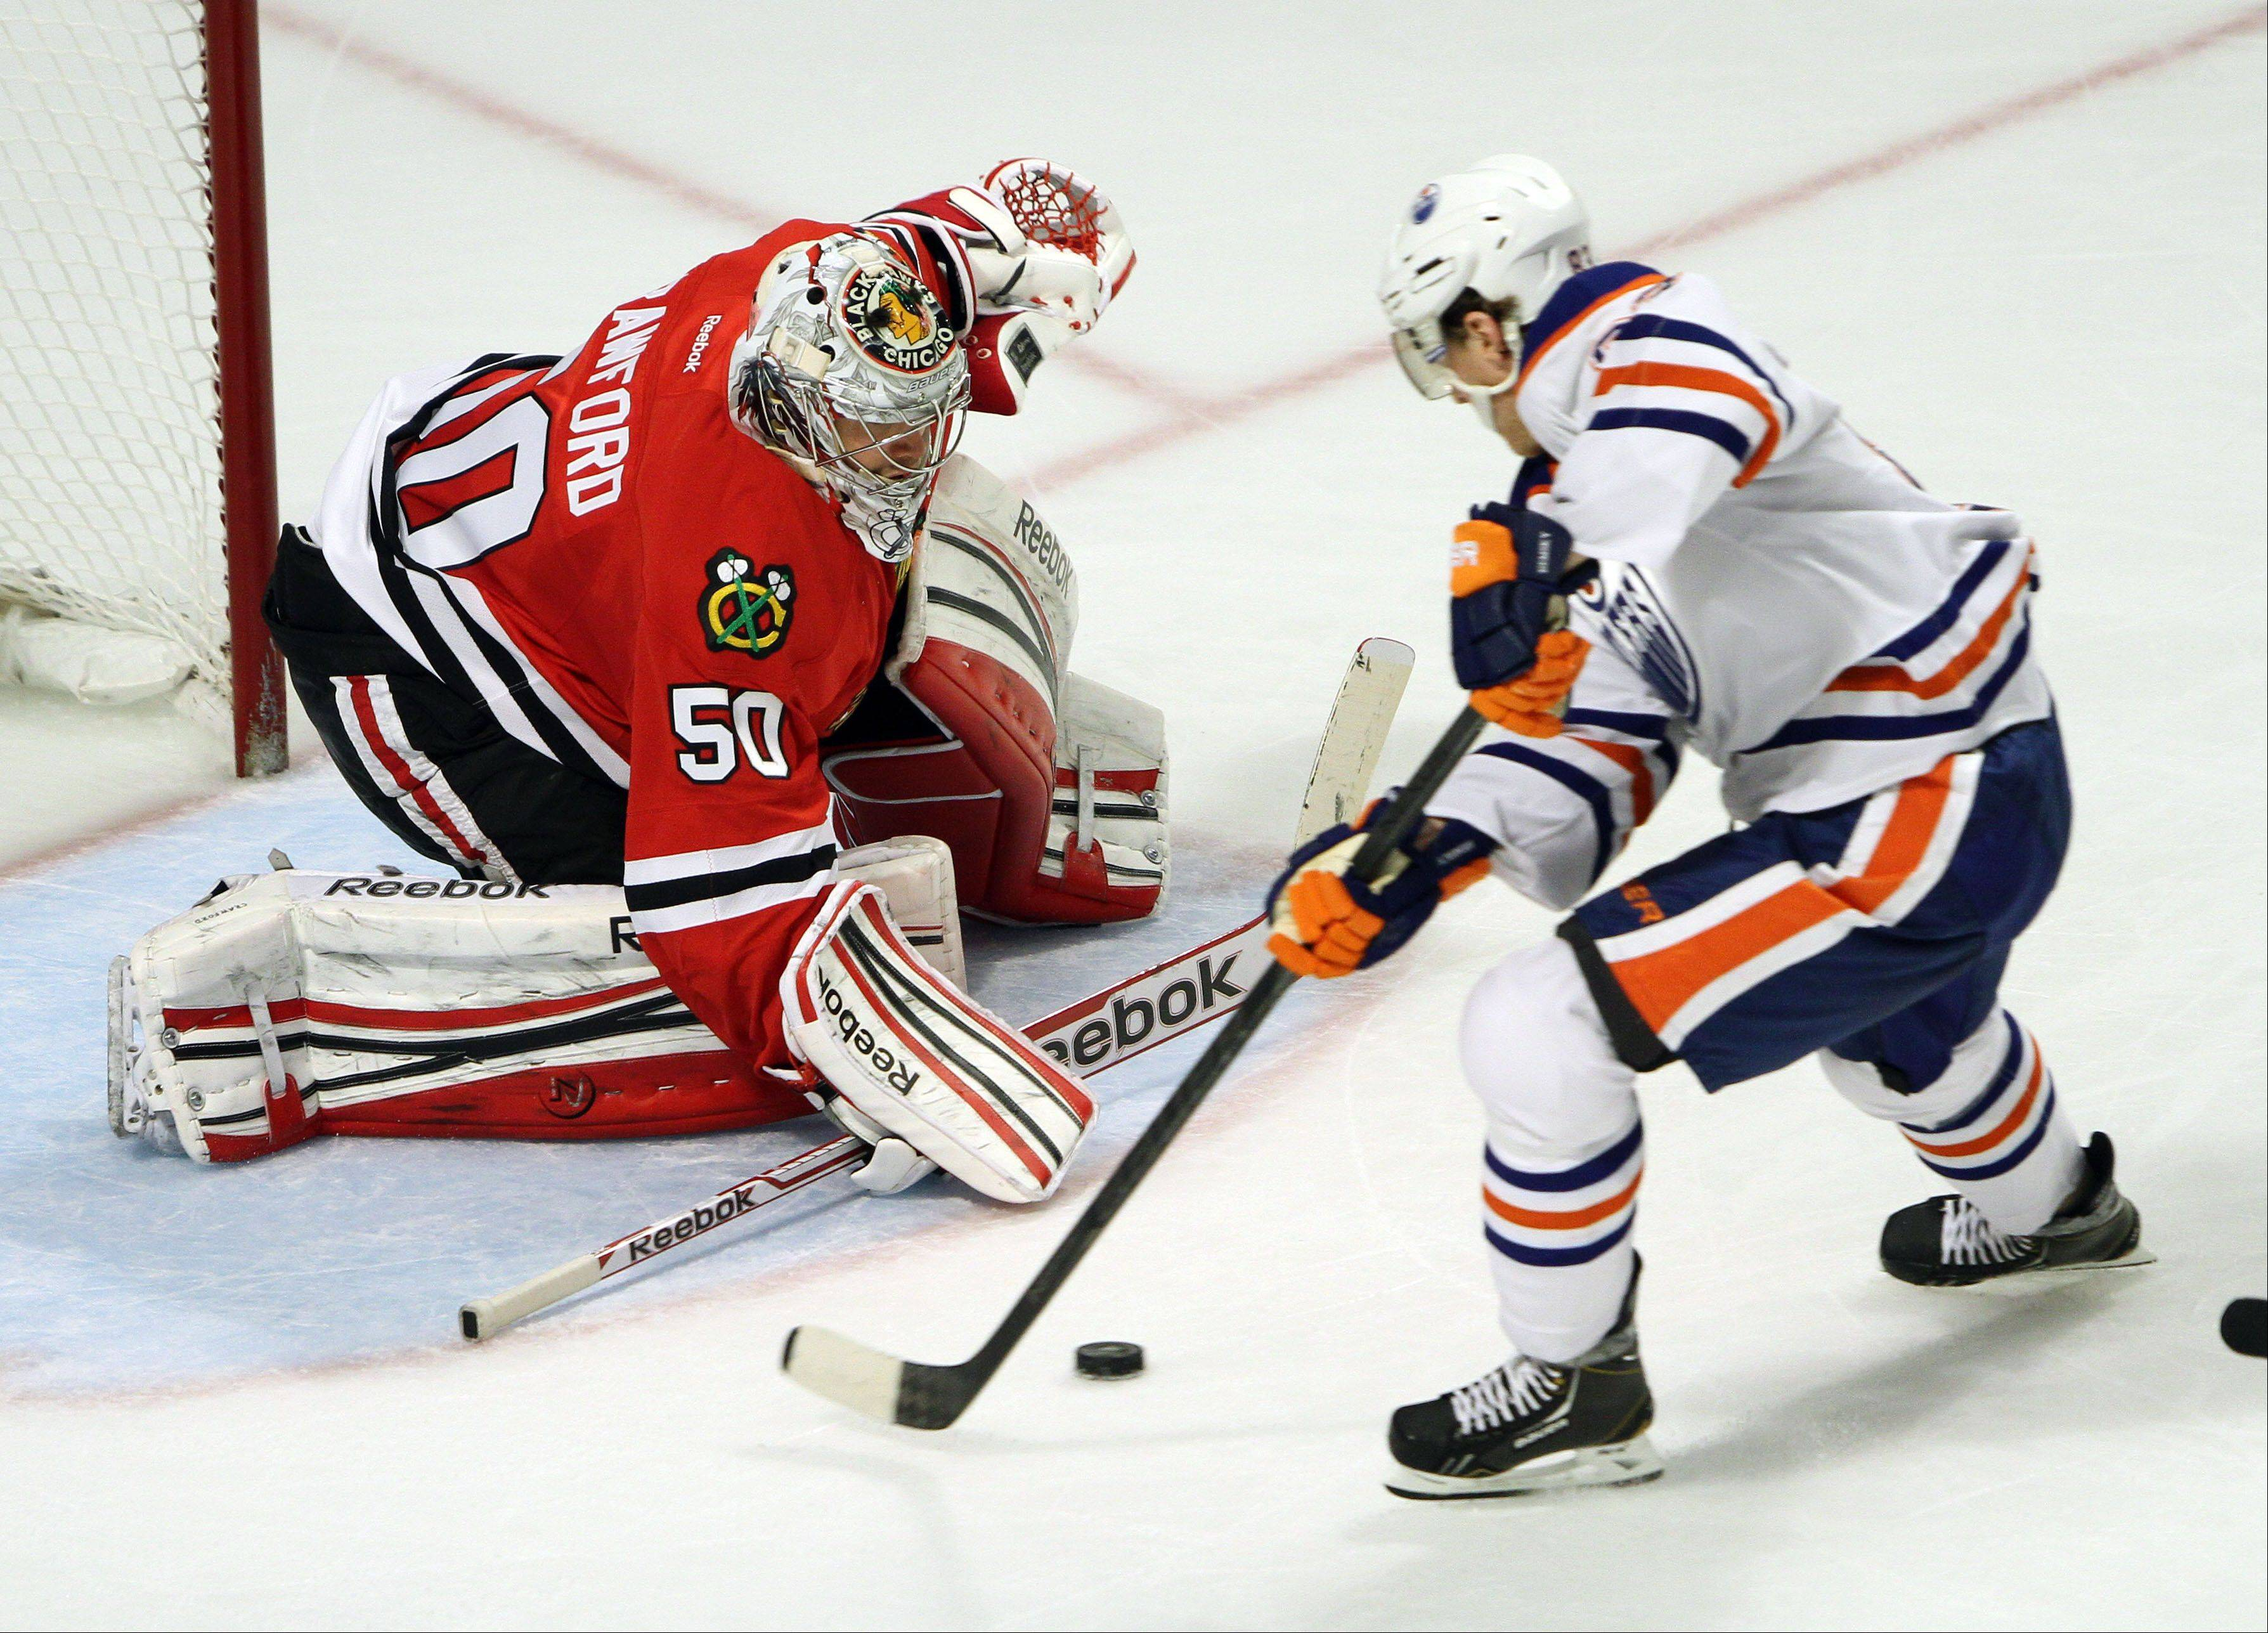 Edmonton Oilers center Shawn Horcoff drives on Chicago Blackhawks goalie Corey Crawford during their game Sunday night at the United Center in Chicago.